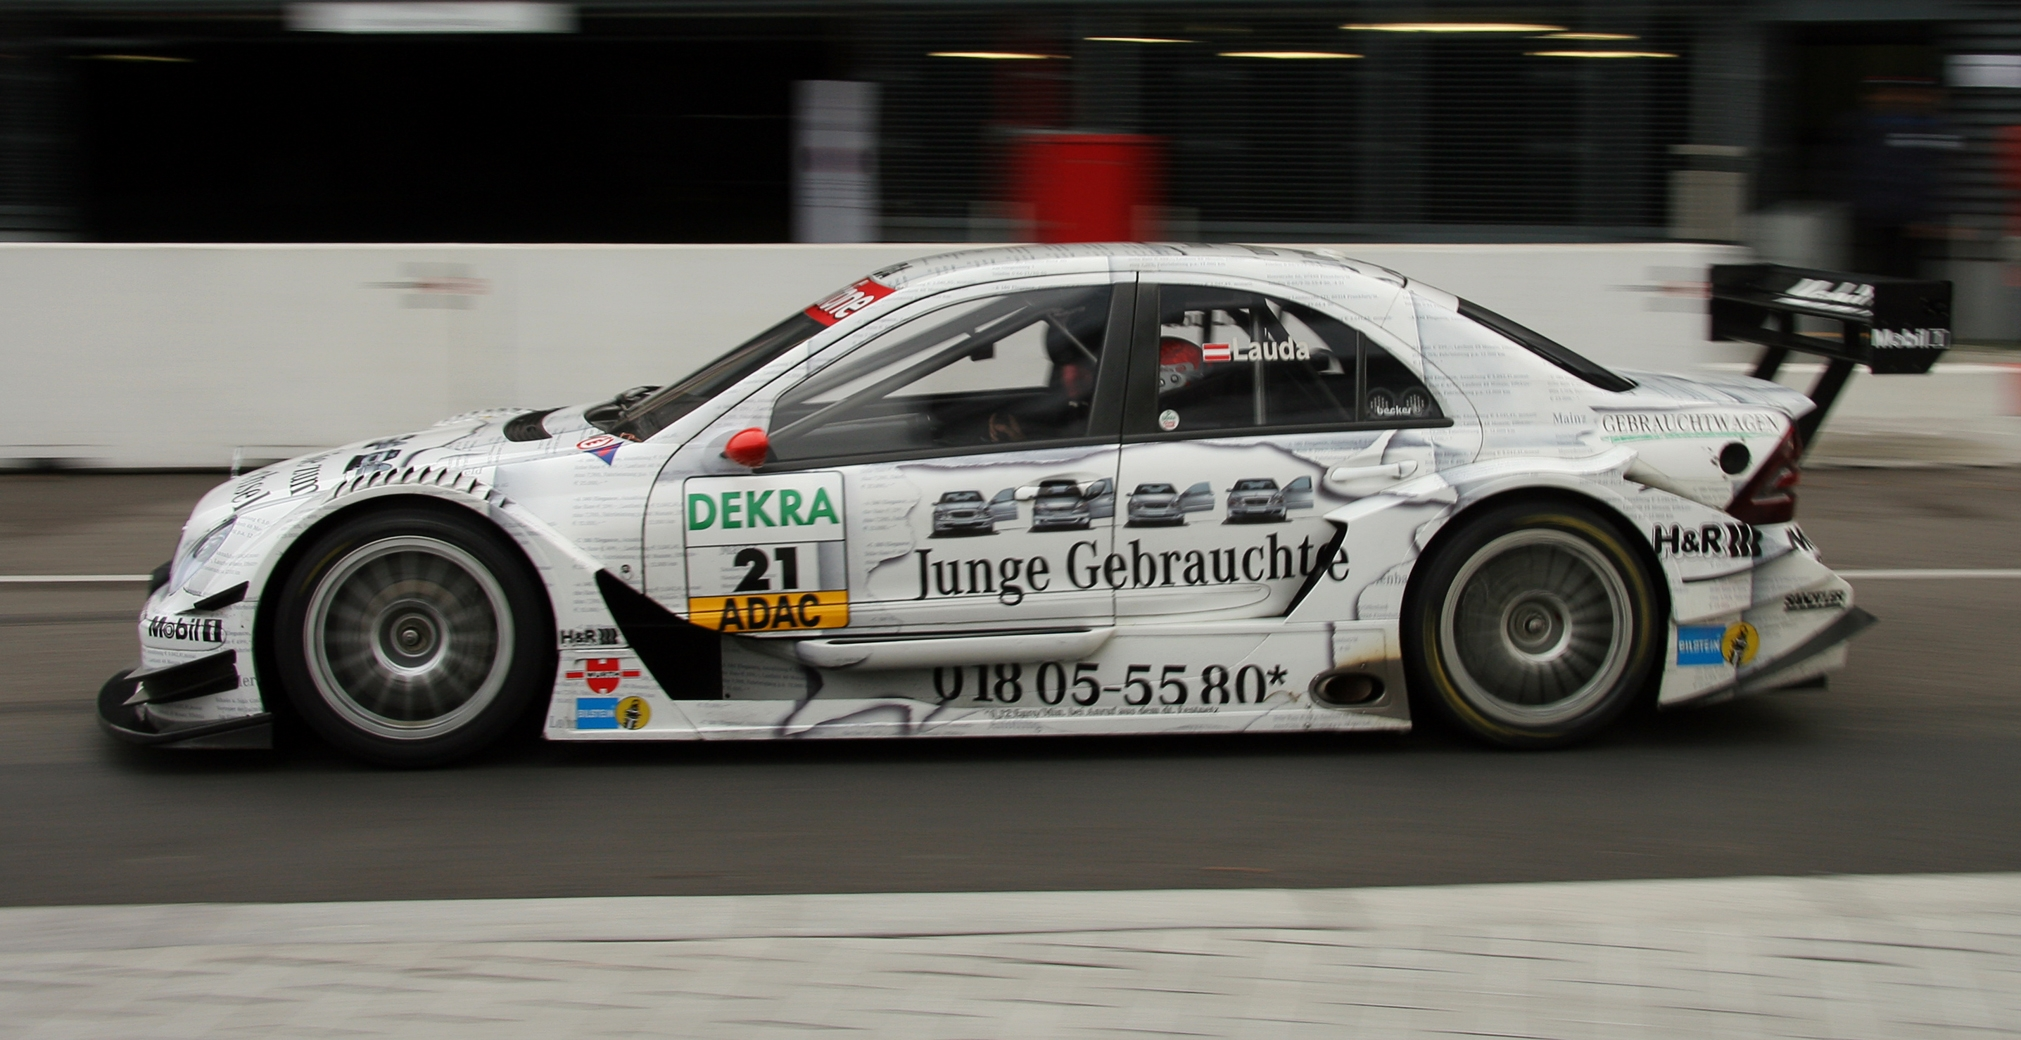 File:DTM car mercedes2006 Lauda.jpg - Wikimedia Commons